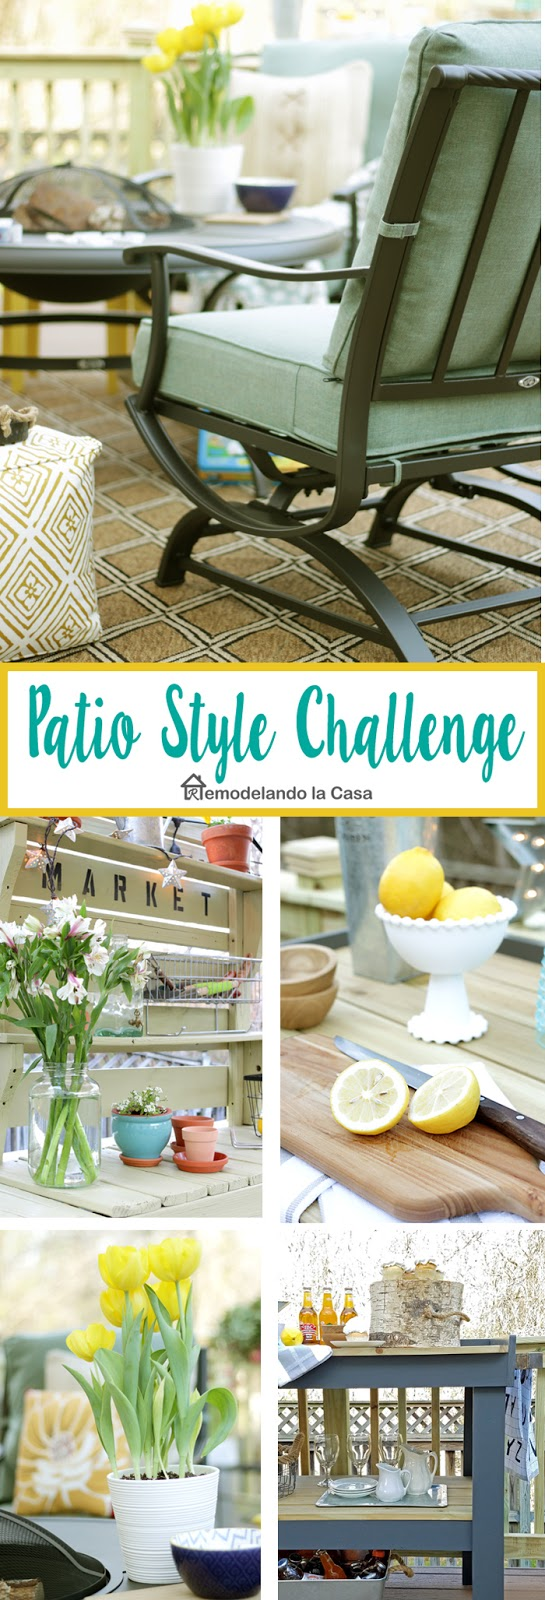 The Home Depot #patiostylechallenge with yellow and blue decor